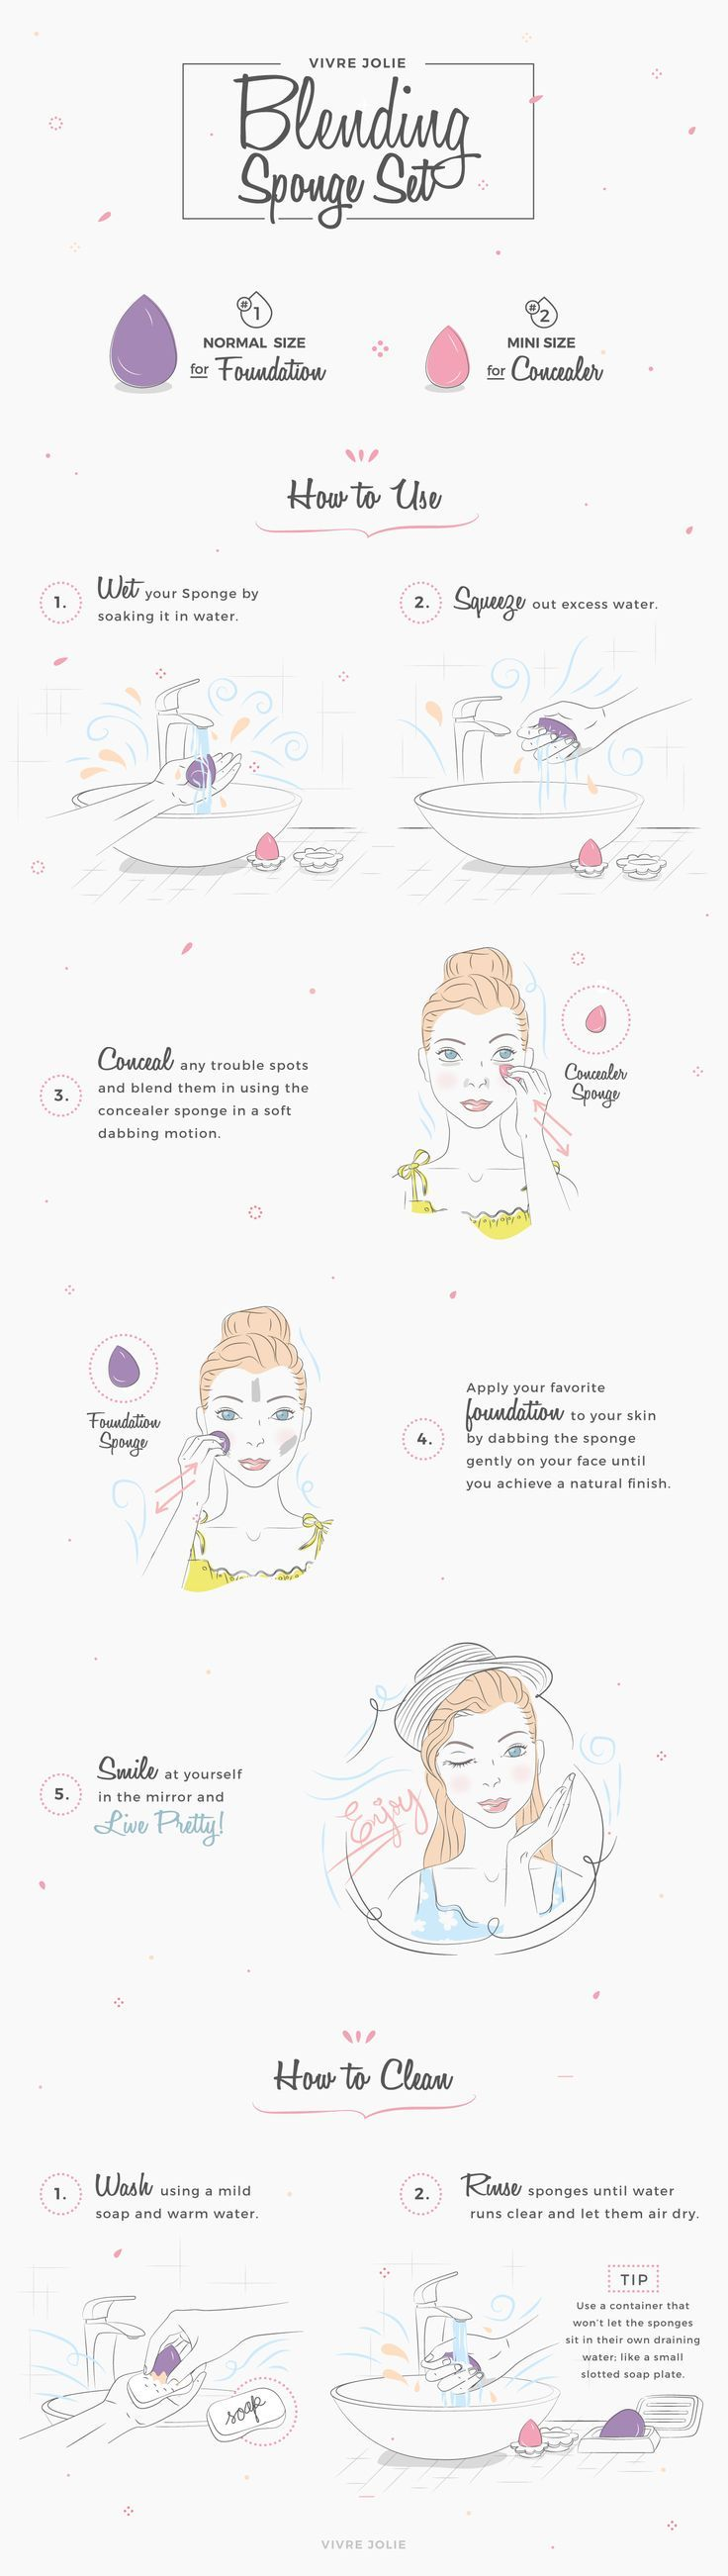 """How to Use a Beauty Blending Sponge to Apply your Makeup Flawlessly <a class=""""pintag searchlink"""" data-query=""""#beautyblender"""" data-type=""""hashtag"""" href=""""/search/?q=#beautyblender&rs=hashtag"""" rel=""""nofollow"""" title=""""#beautyblender search Pinterest"""">#beautyblender</a>"""